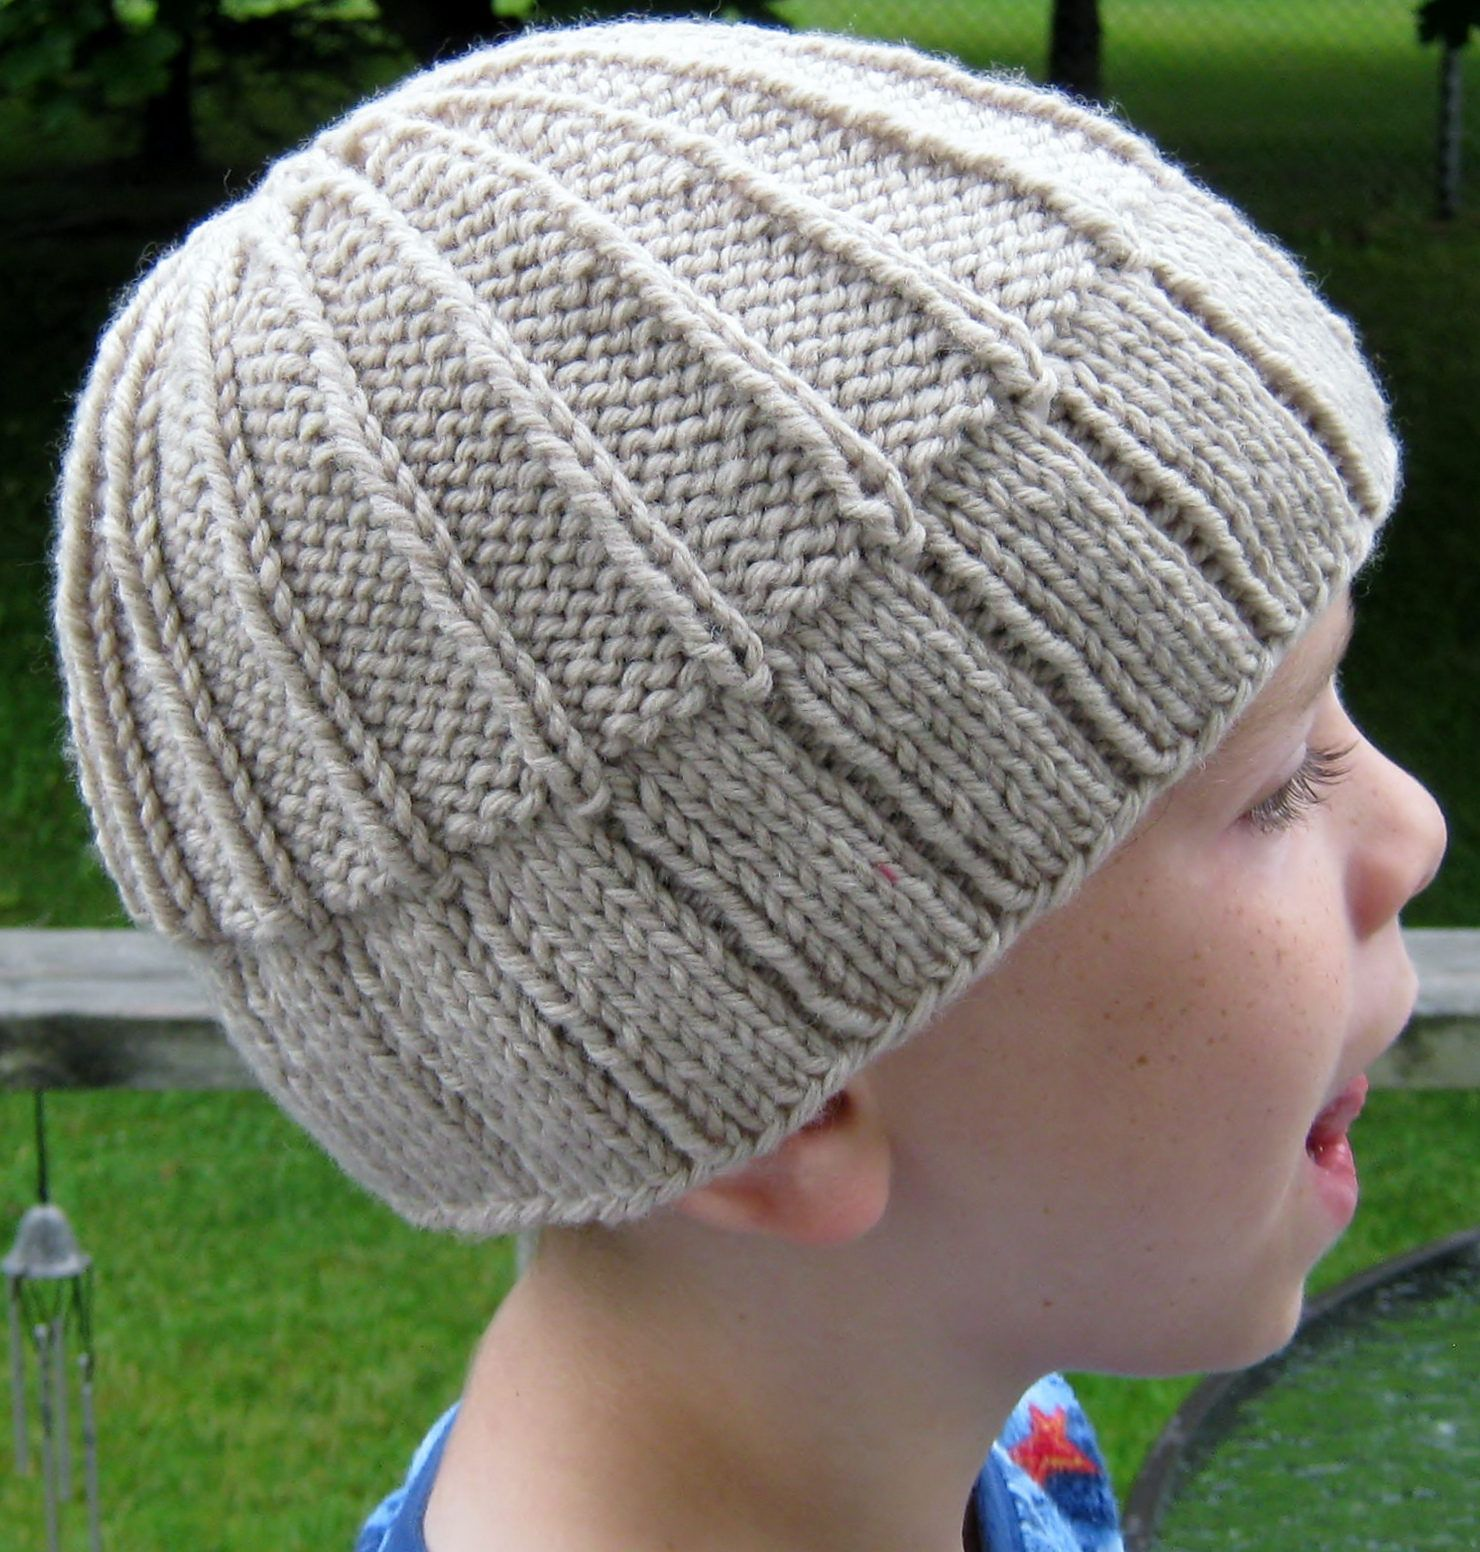 Beanie hat knitting patterns knitting patterns patterns and beanie hat knitting patterns bankloansurffo Image collections